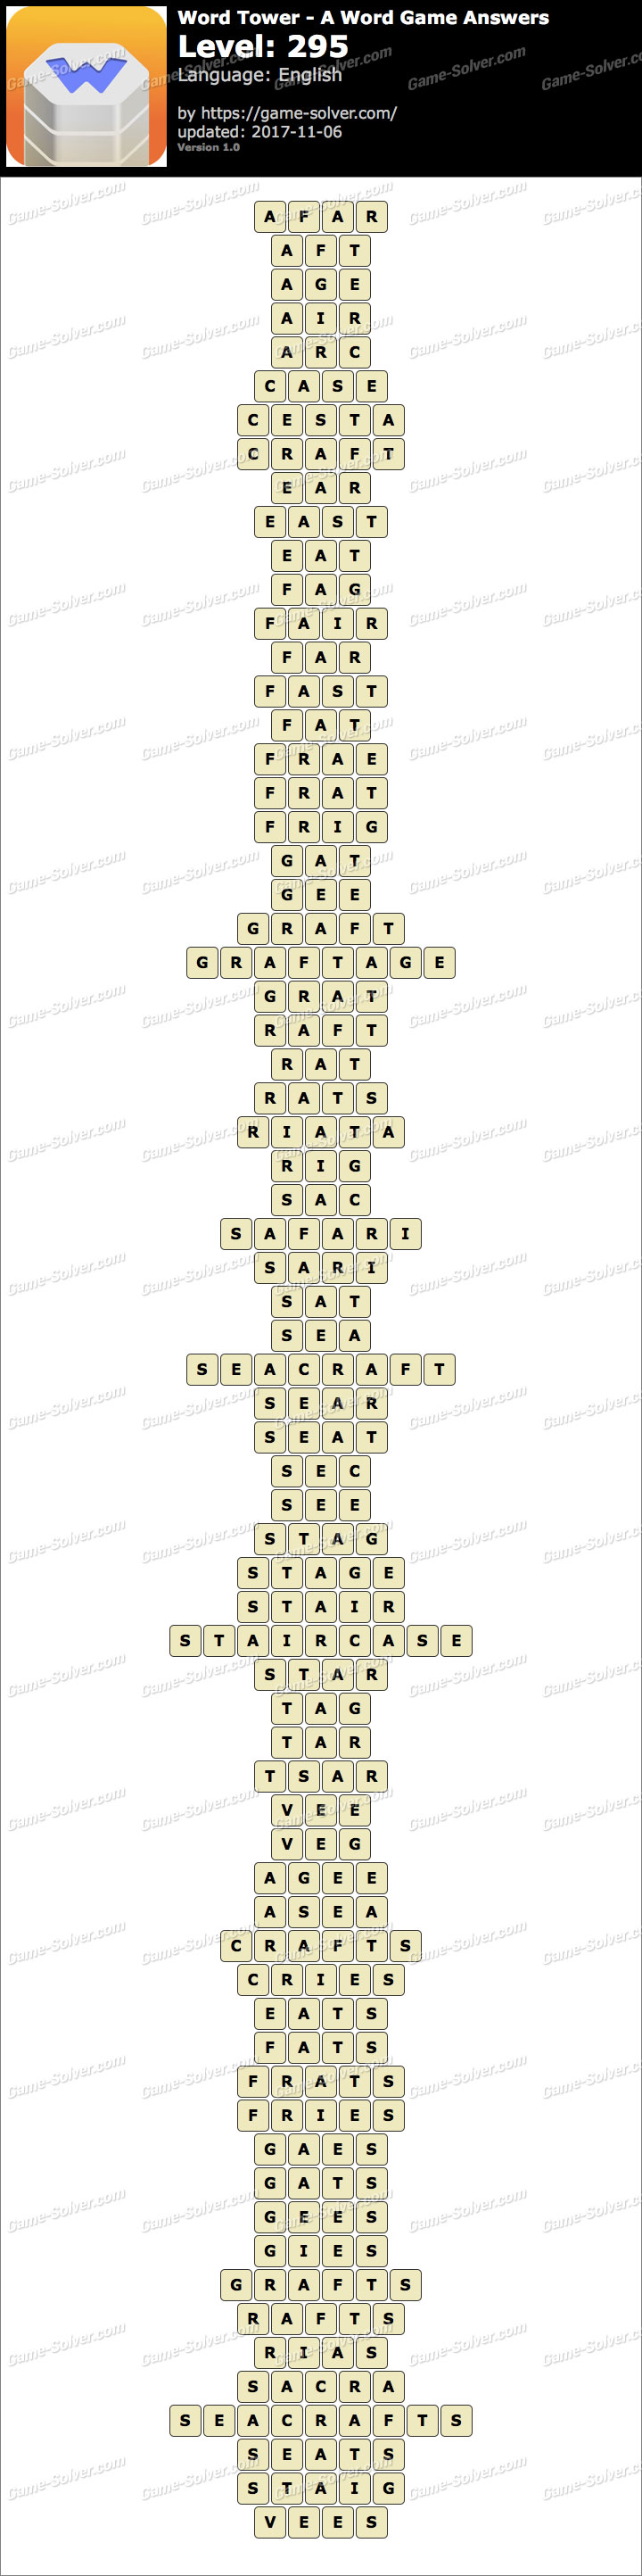 Word Tower Level 295 Answers